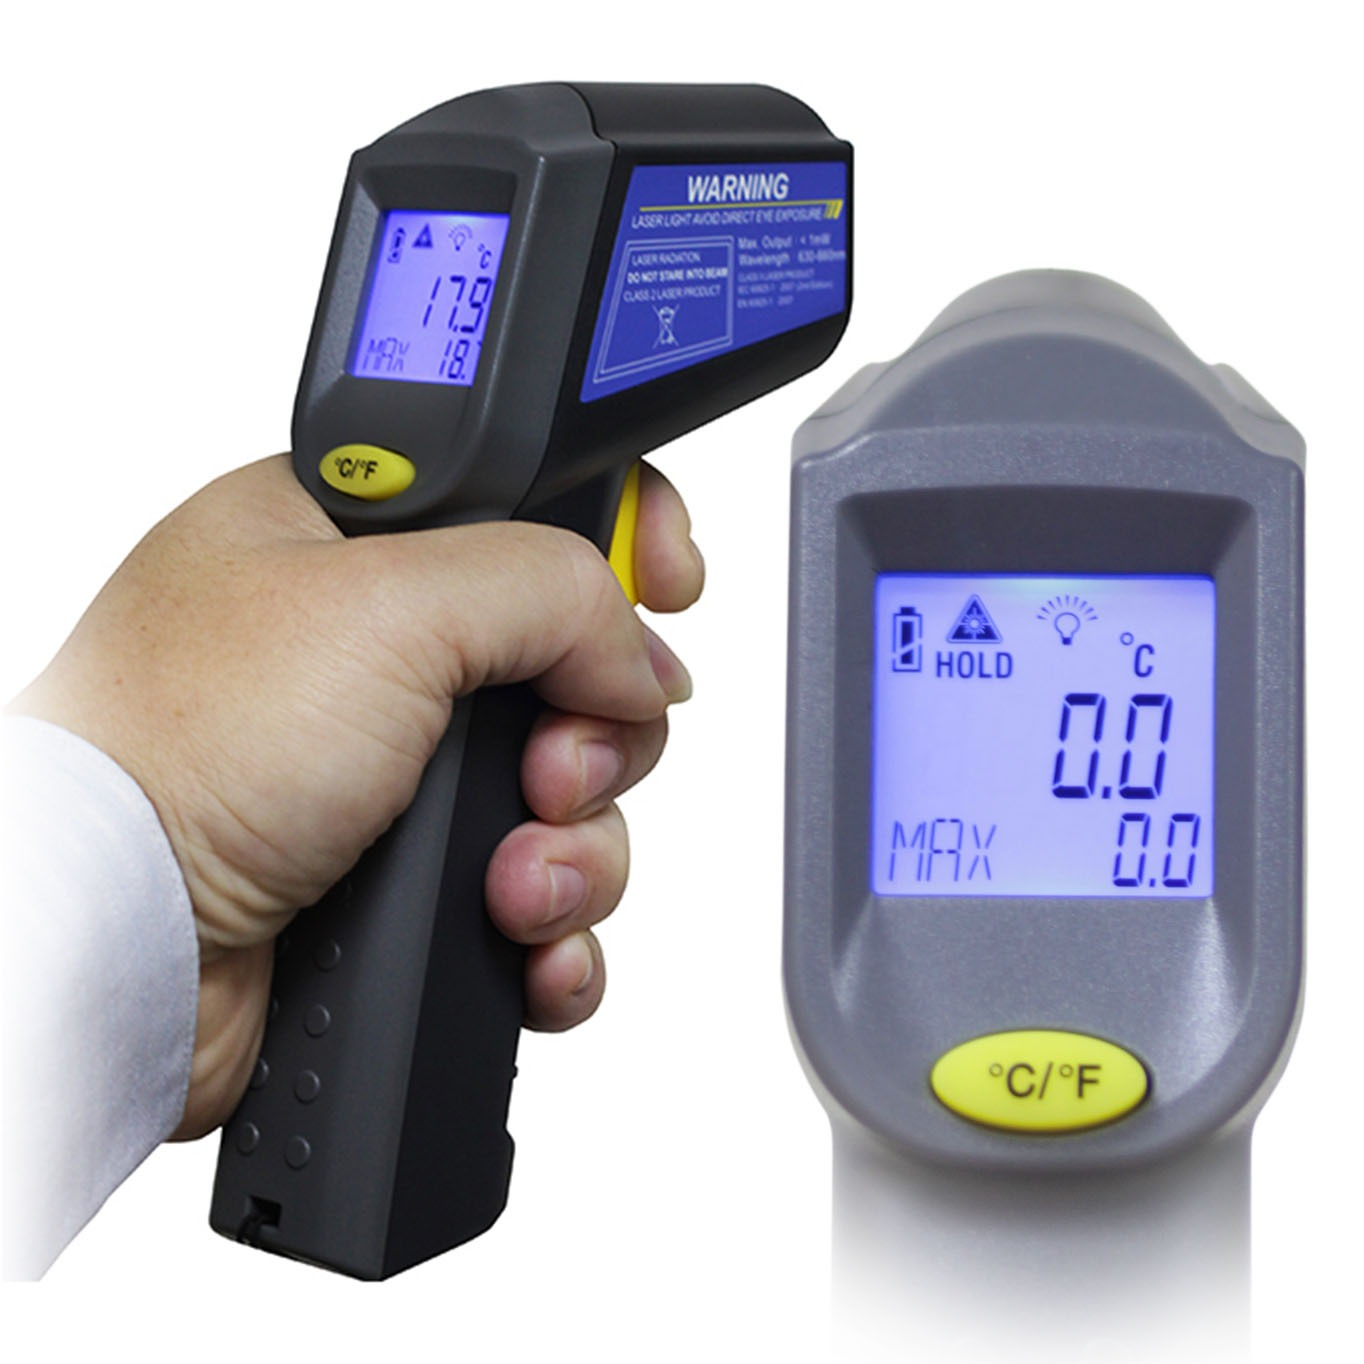 Industrial Machine / Equipment Infrared Thermometer for Testing Equipment made by ECPAL VEHICLE CO., LTD. 威爾可有限公司 - MatchSupplier.com